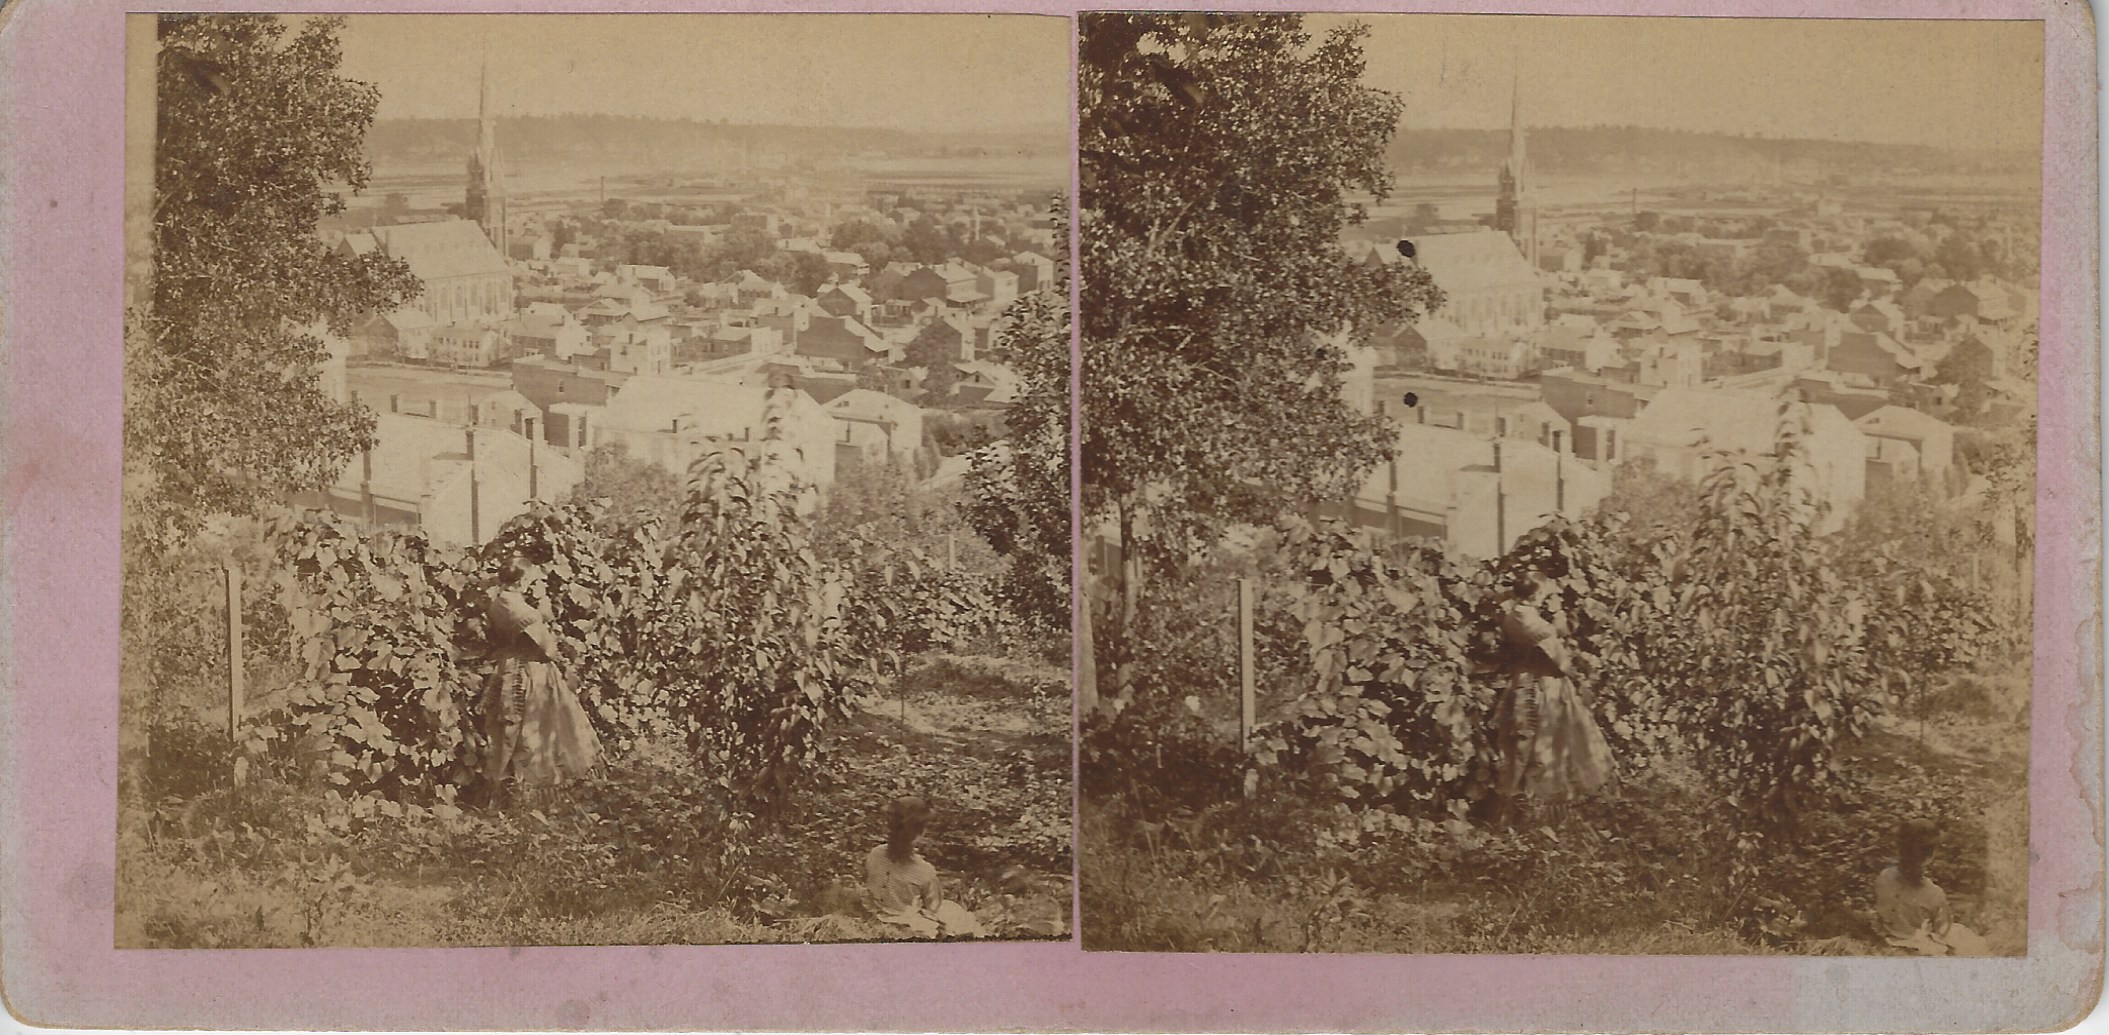 LJTP 100.298 - S. Root - Looking south from Seminary HIll - c1880